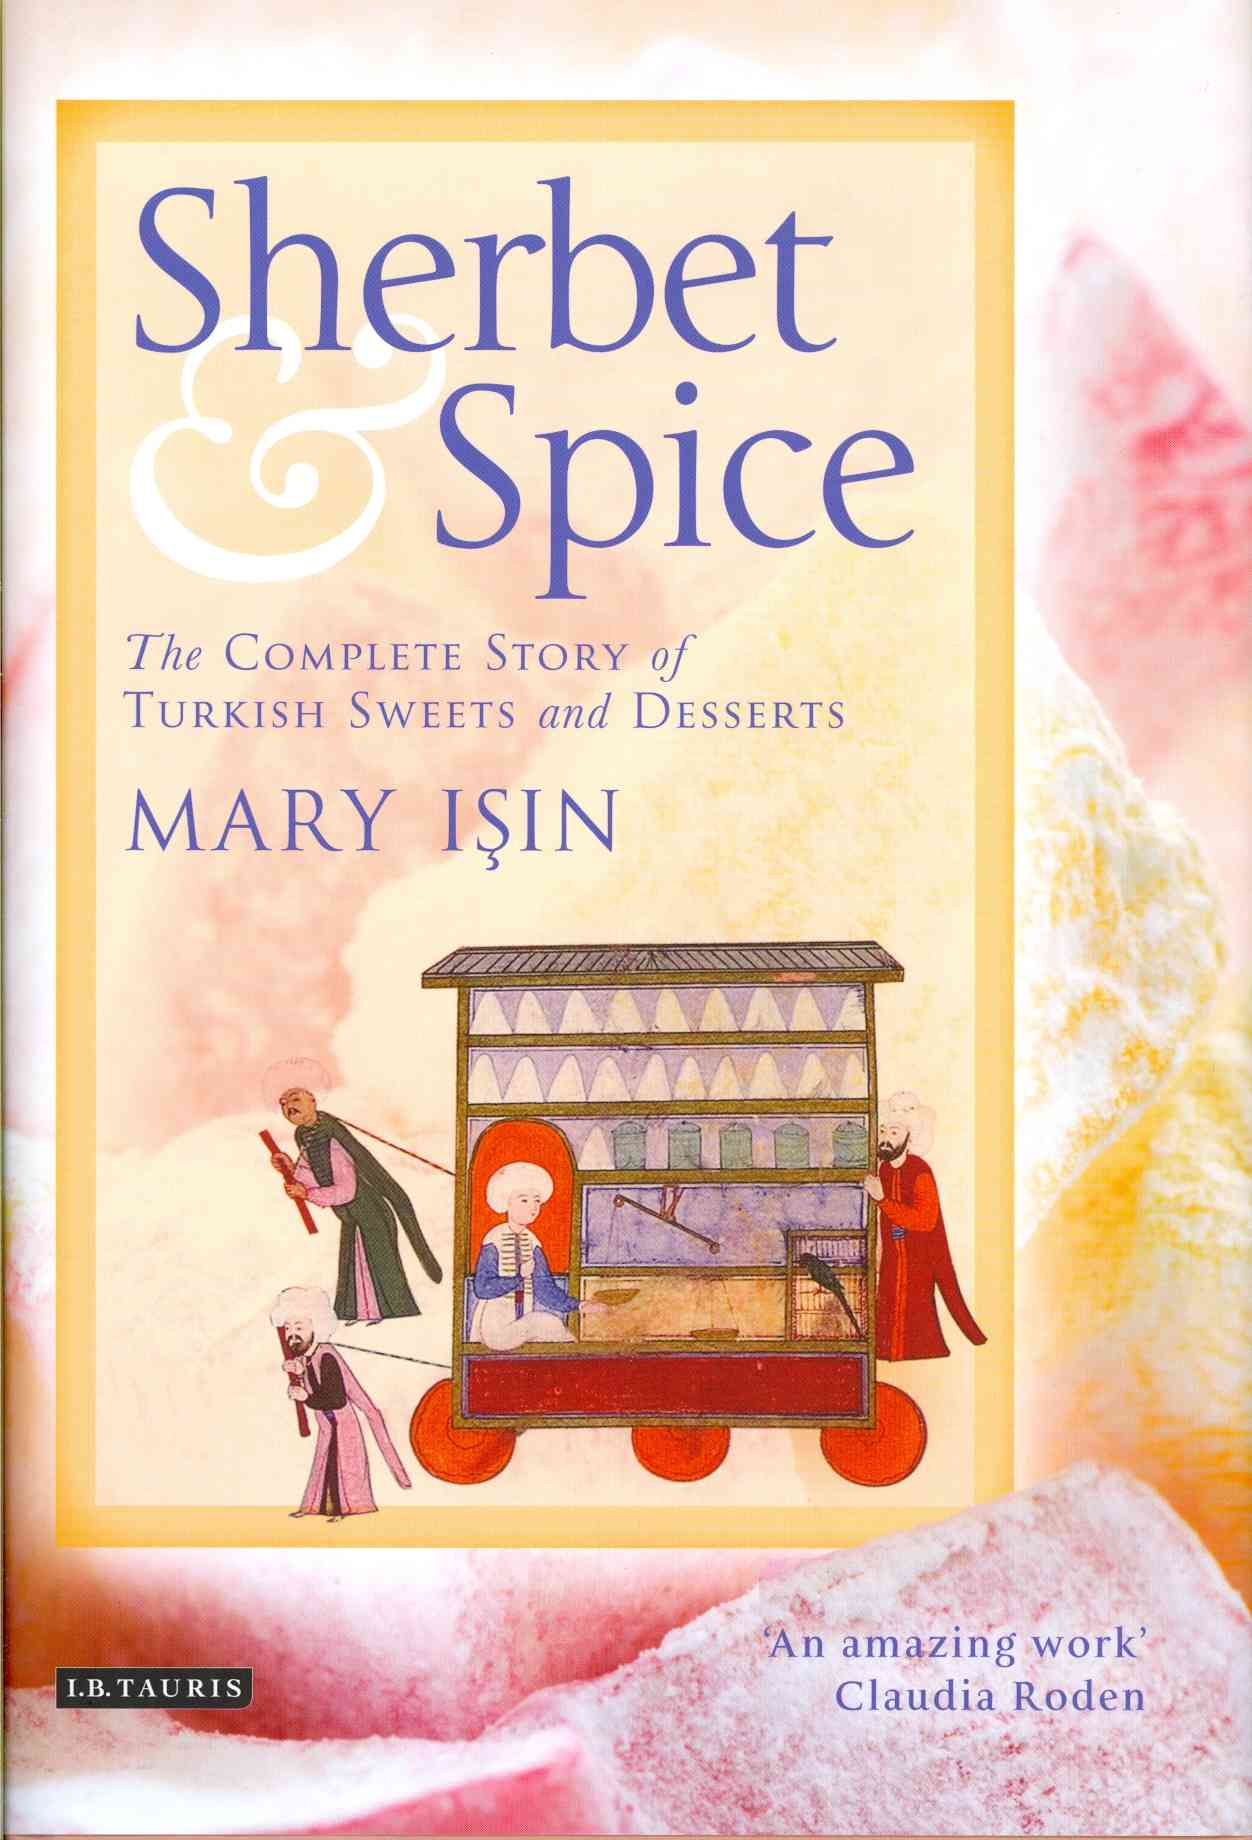 Sherbet & Spice: The Complete Story of Turkish Sweets and Desserts (Hardcover)